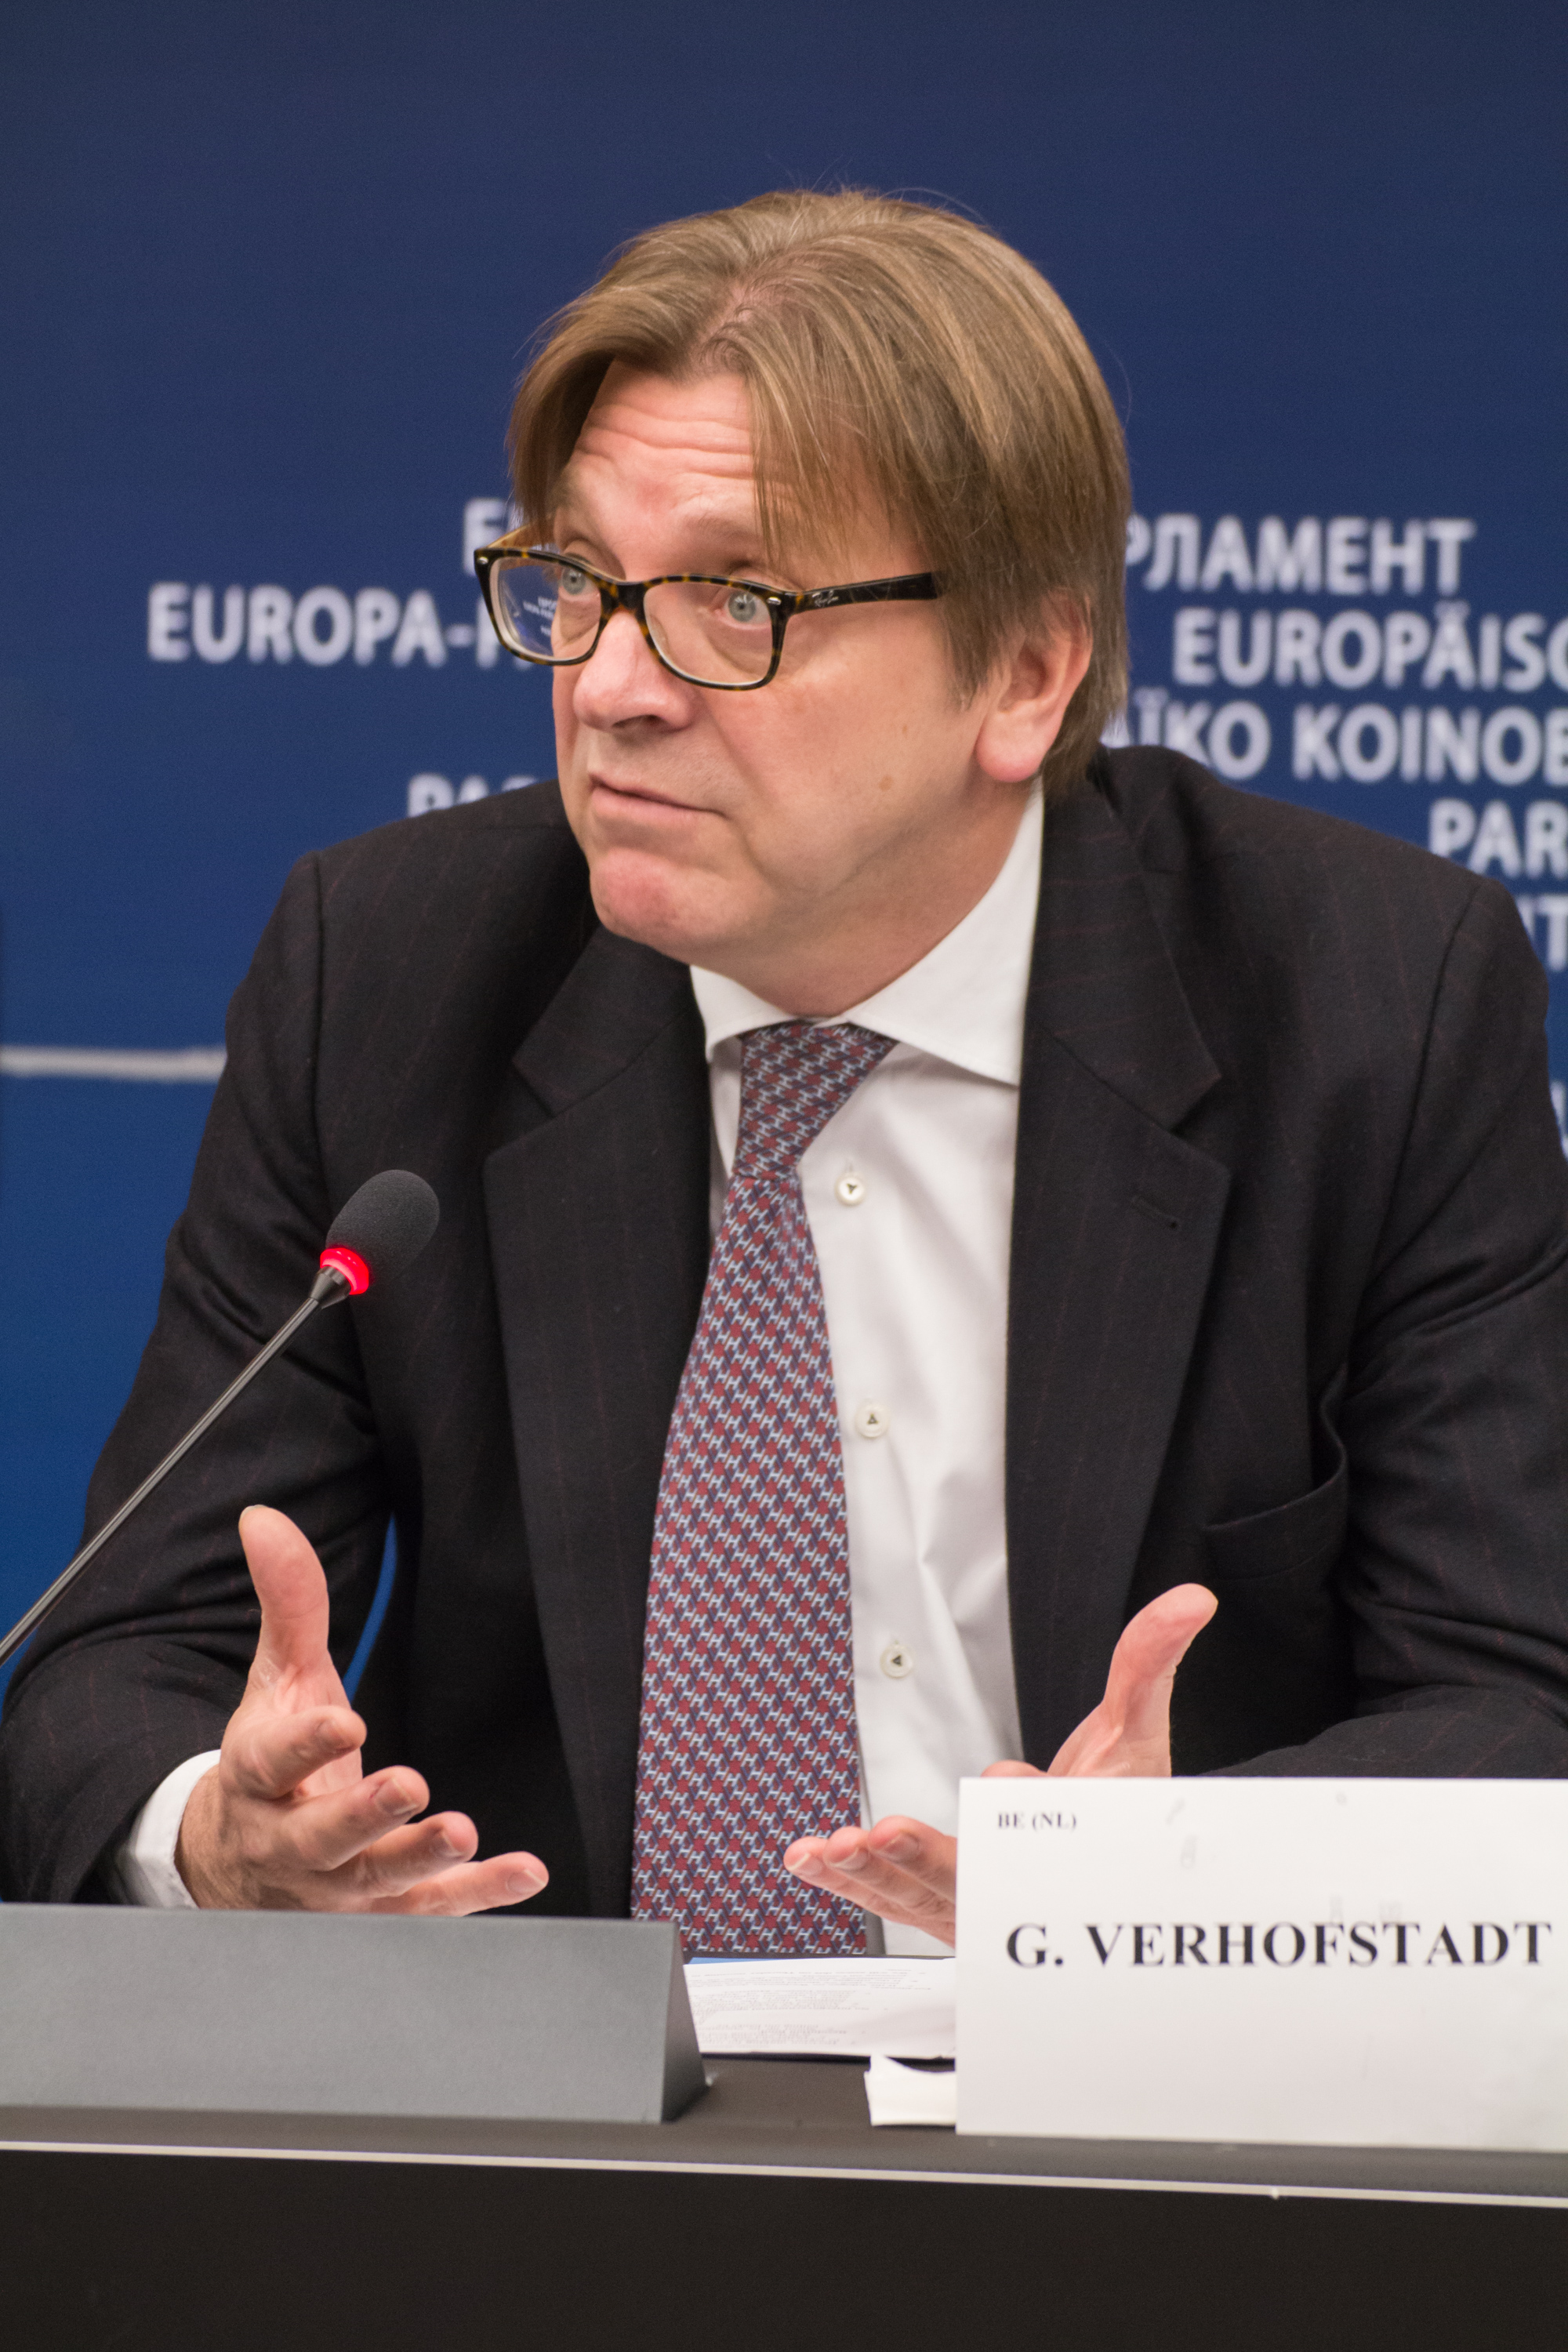 Guy_Verhofstadt_EP_press_conference_3.jpg